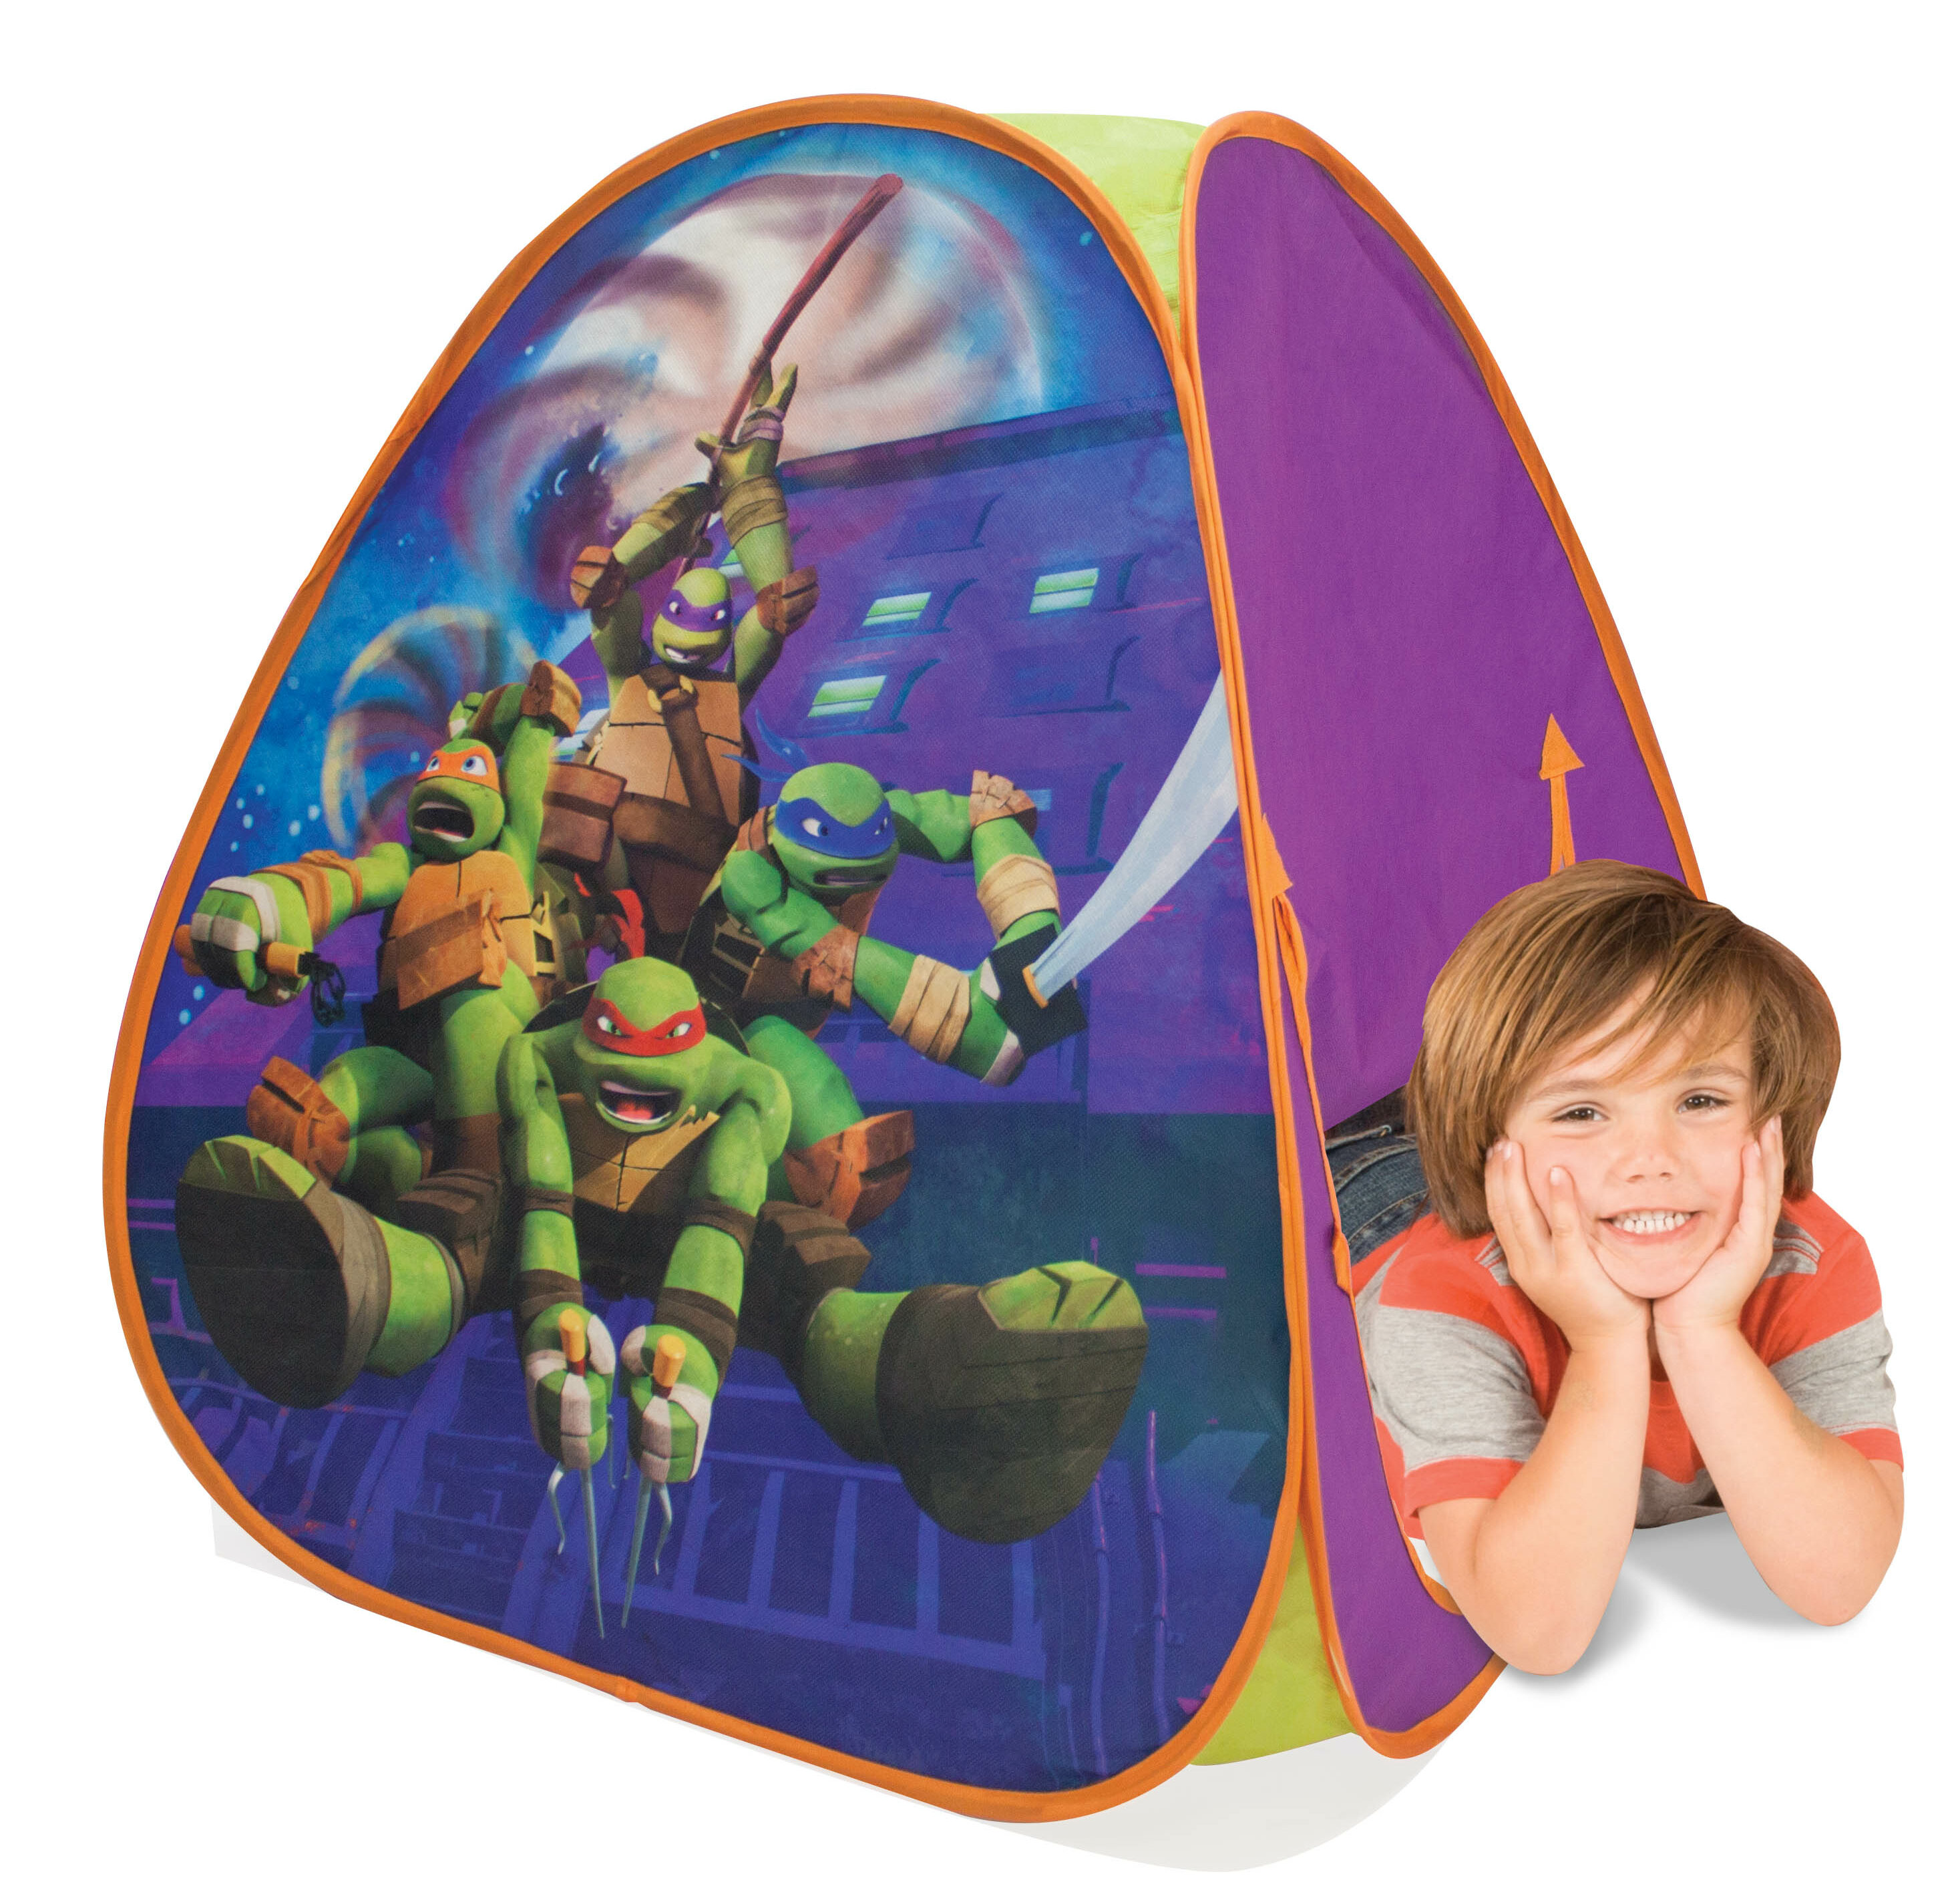 Playhut Teenage Mutant Ninja Turtles Classic Hideaway Play Tent u0026 Reviews | Wayfair  sc 1 st  Wayfair & Playhut Teenage Mutant Ninja Turtles Classic Hideaway Play Tent ...